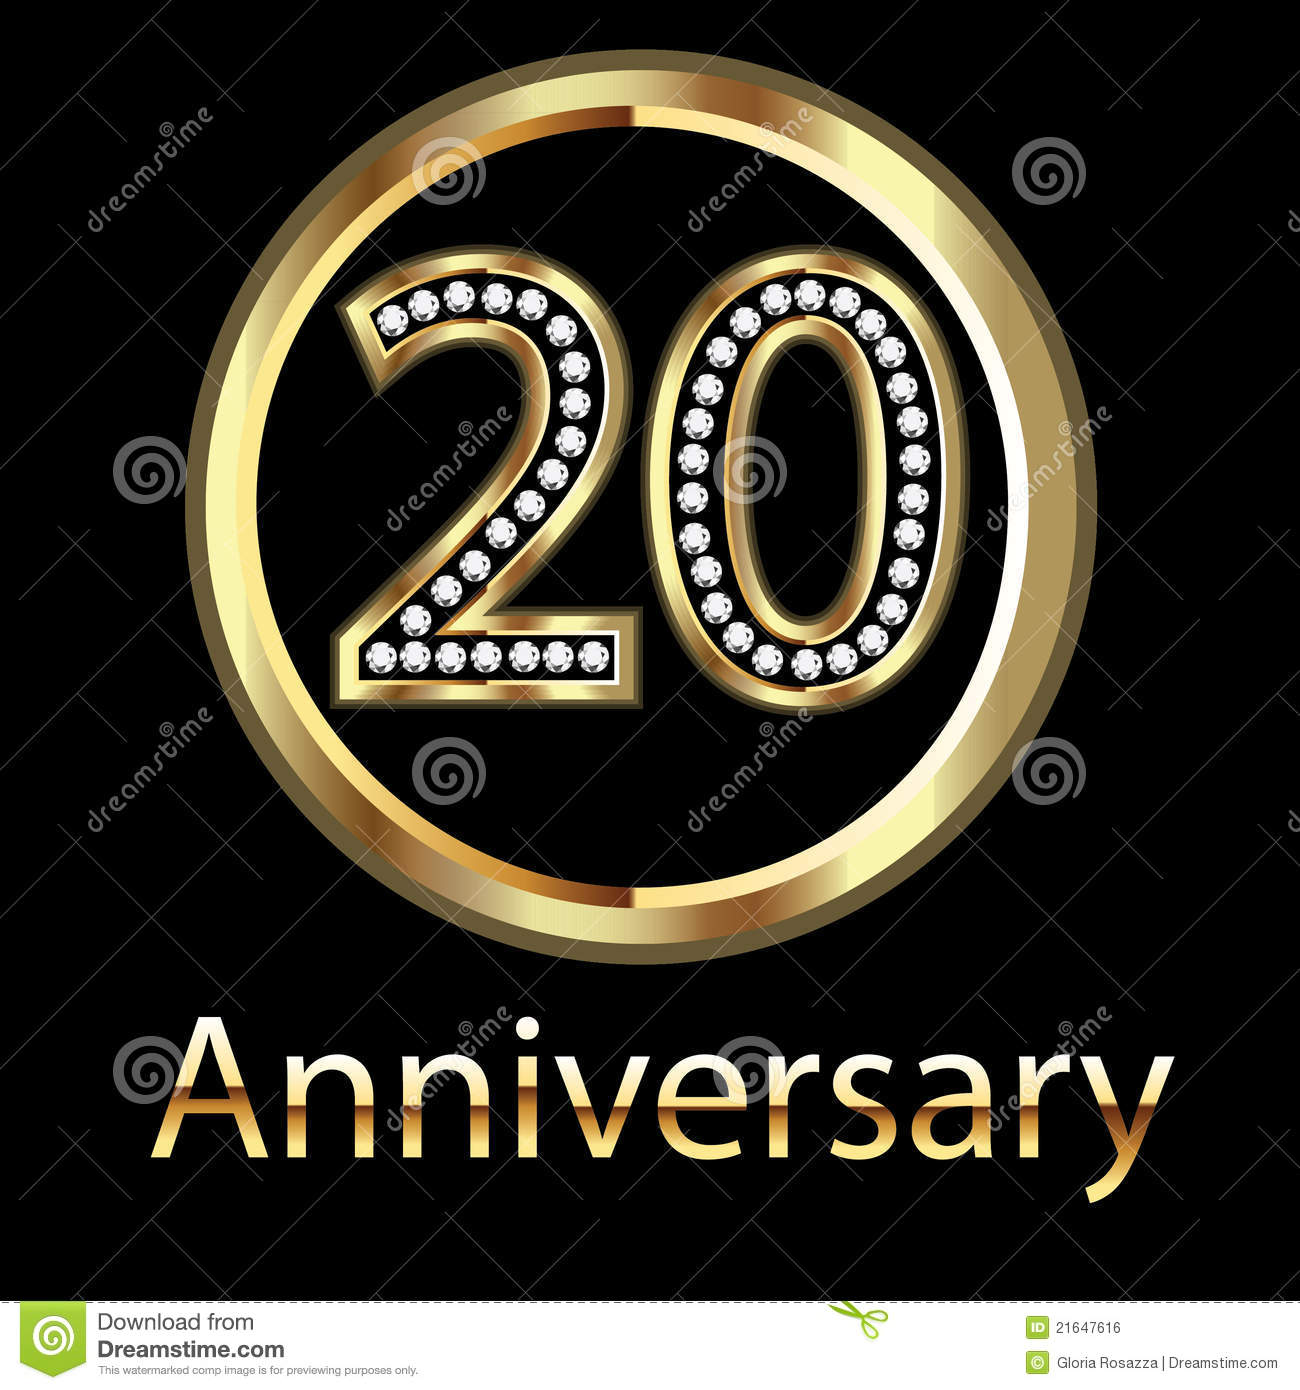 ... 20th Anniversary Birthday Royalty Free Stock Image - Image: 21647616